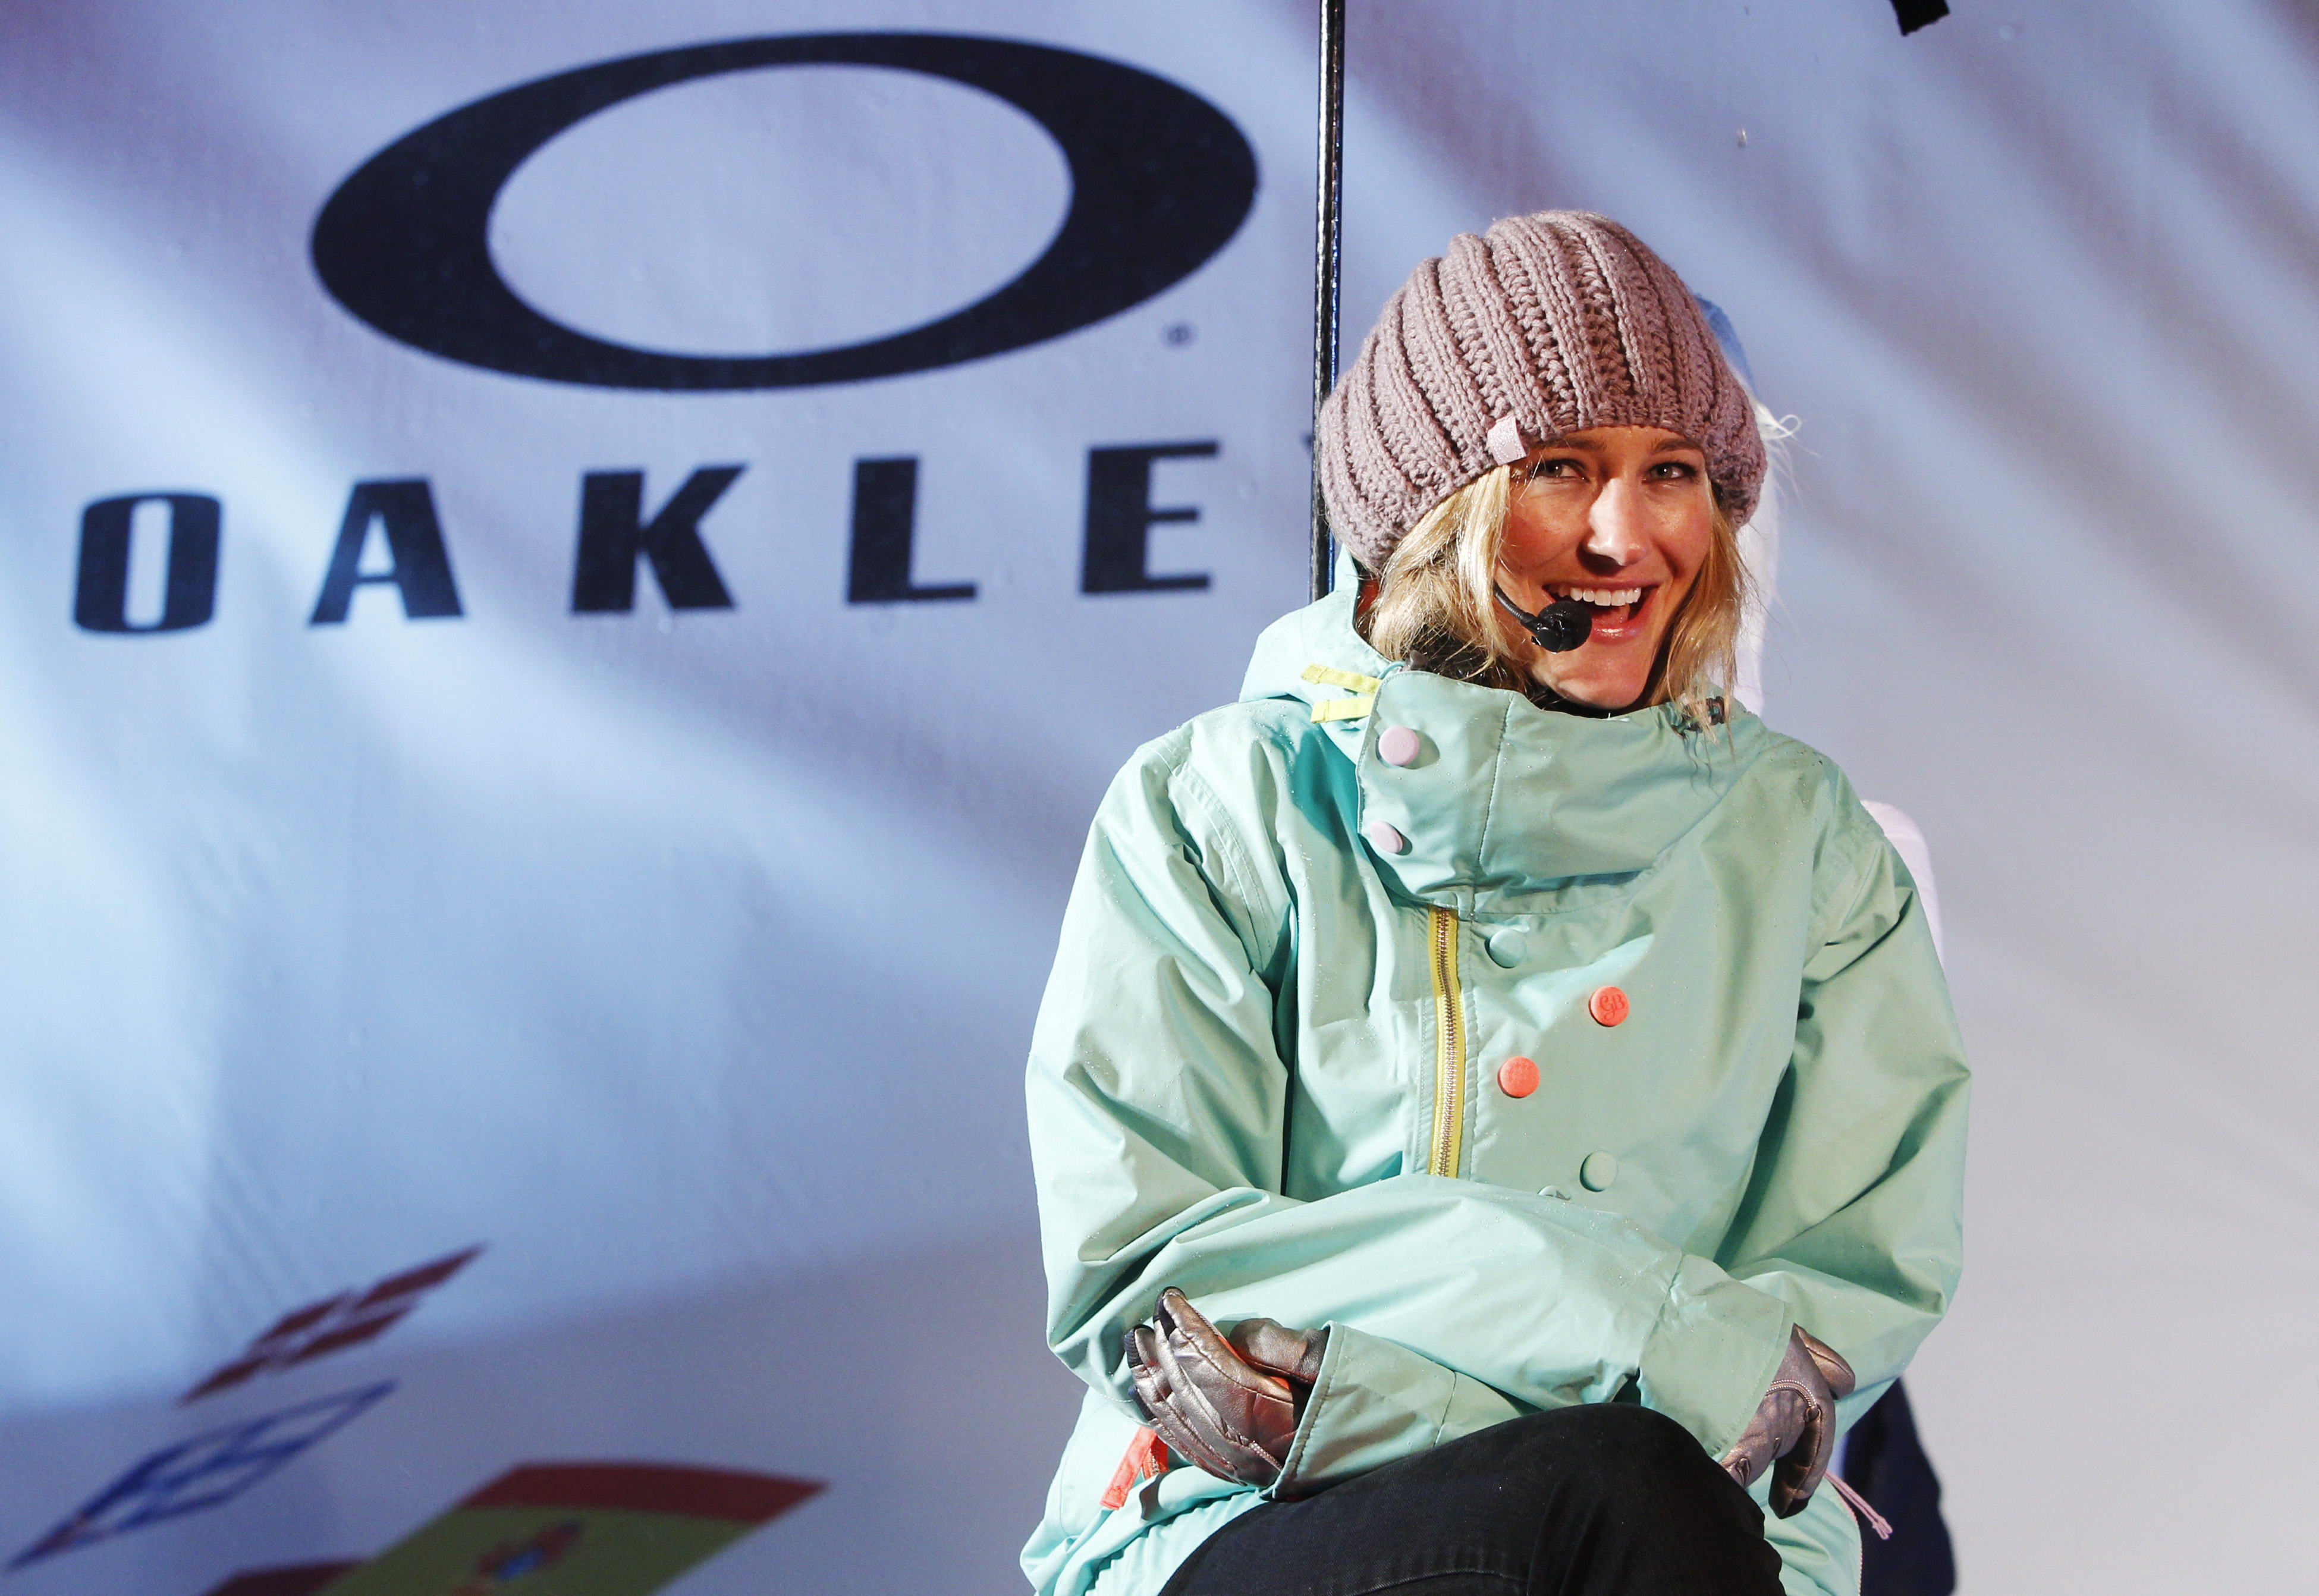 NORTH VANCOUVER, CANADA - FEBRUARY 11:  Gretchen Bleiler of the United States answers questions during an interview at an Oakley media event at Grouse Mountain on February 11, 2010 in North Vancouver, Canada.  (Photo by chris po/Getty Images for Oakley)